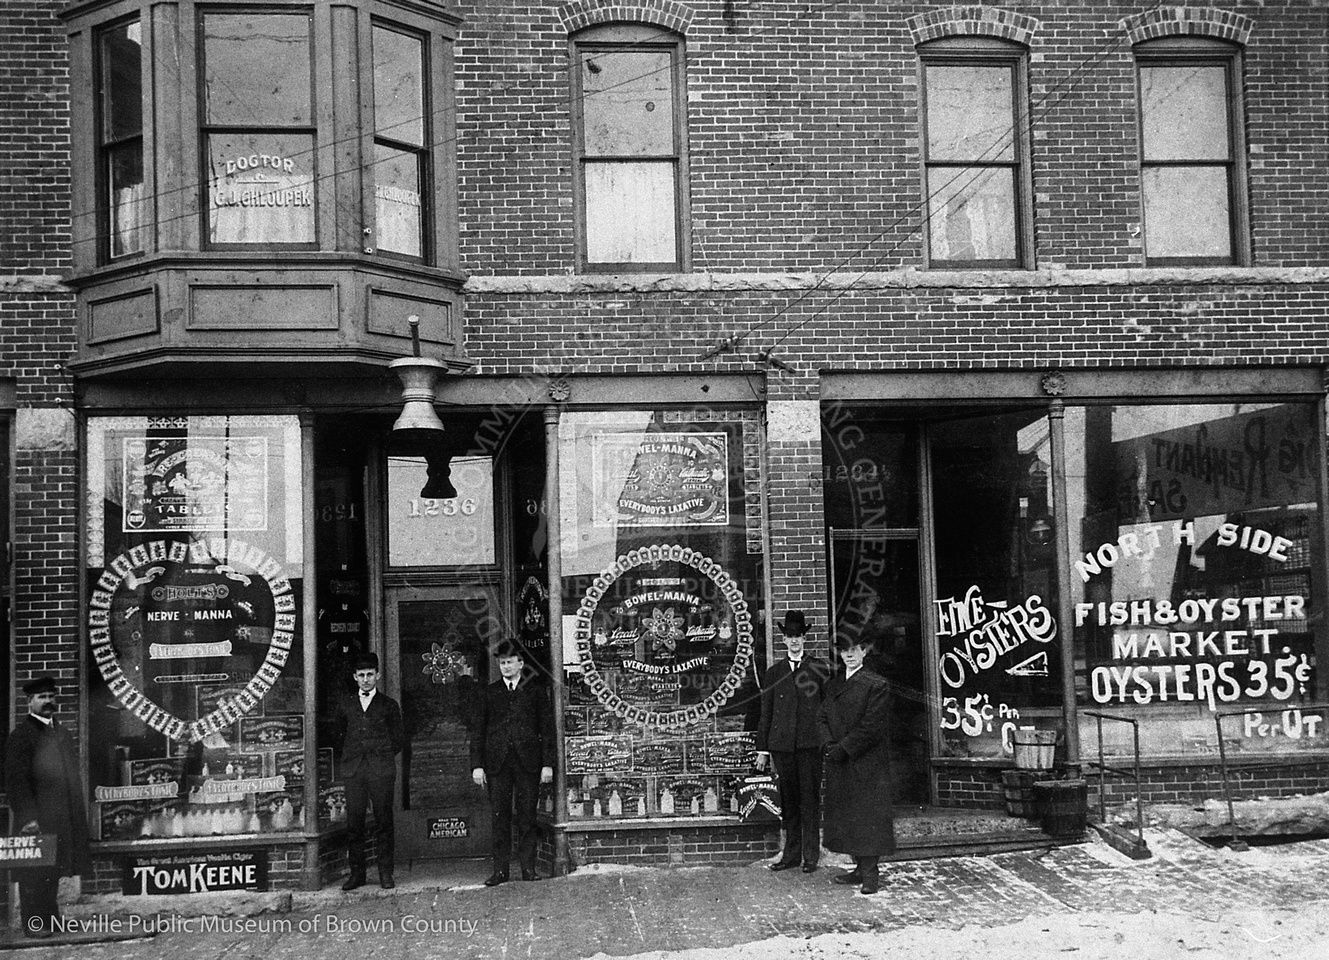 Businesses Green bay wisconsin, Main street, Old photos